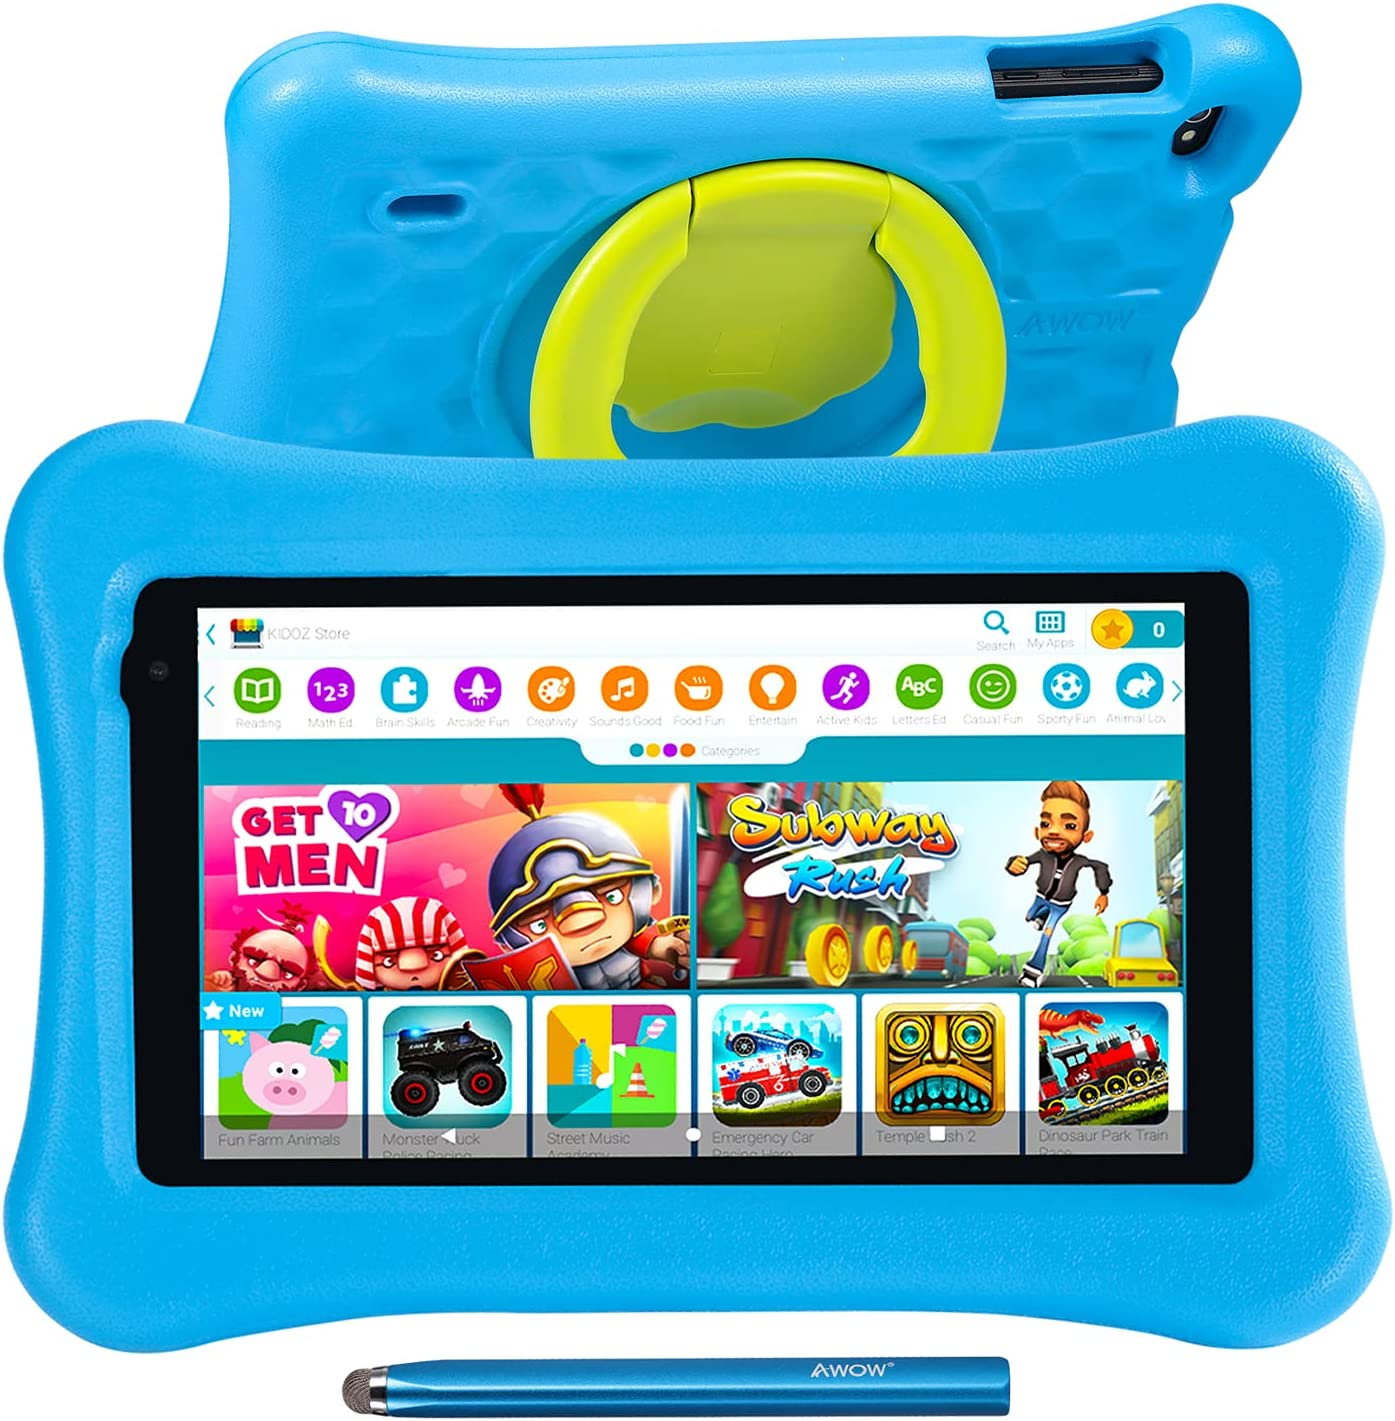 7 inch Kids Tablets Android 10 Go, 2+16GB ROM, KIDOZ Pre-Installed, 2.4G WiFi only, 1024x600 Touchscreen, AWOW Funtab 701, Adjustable Kid-Proof Case, Active Pen (7 inch-KIDOZ-216-Blue)